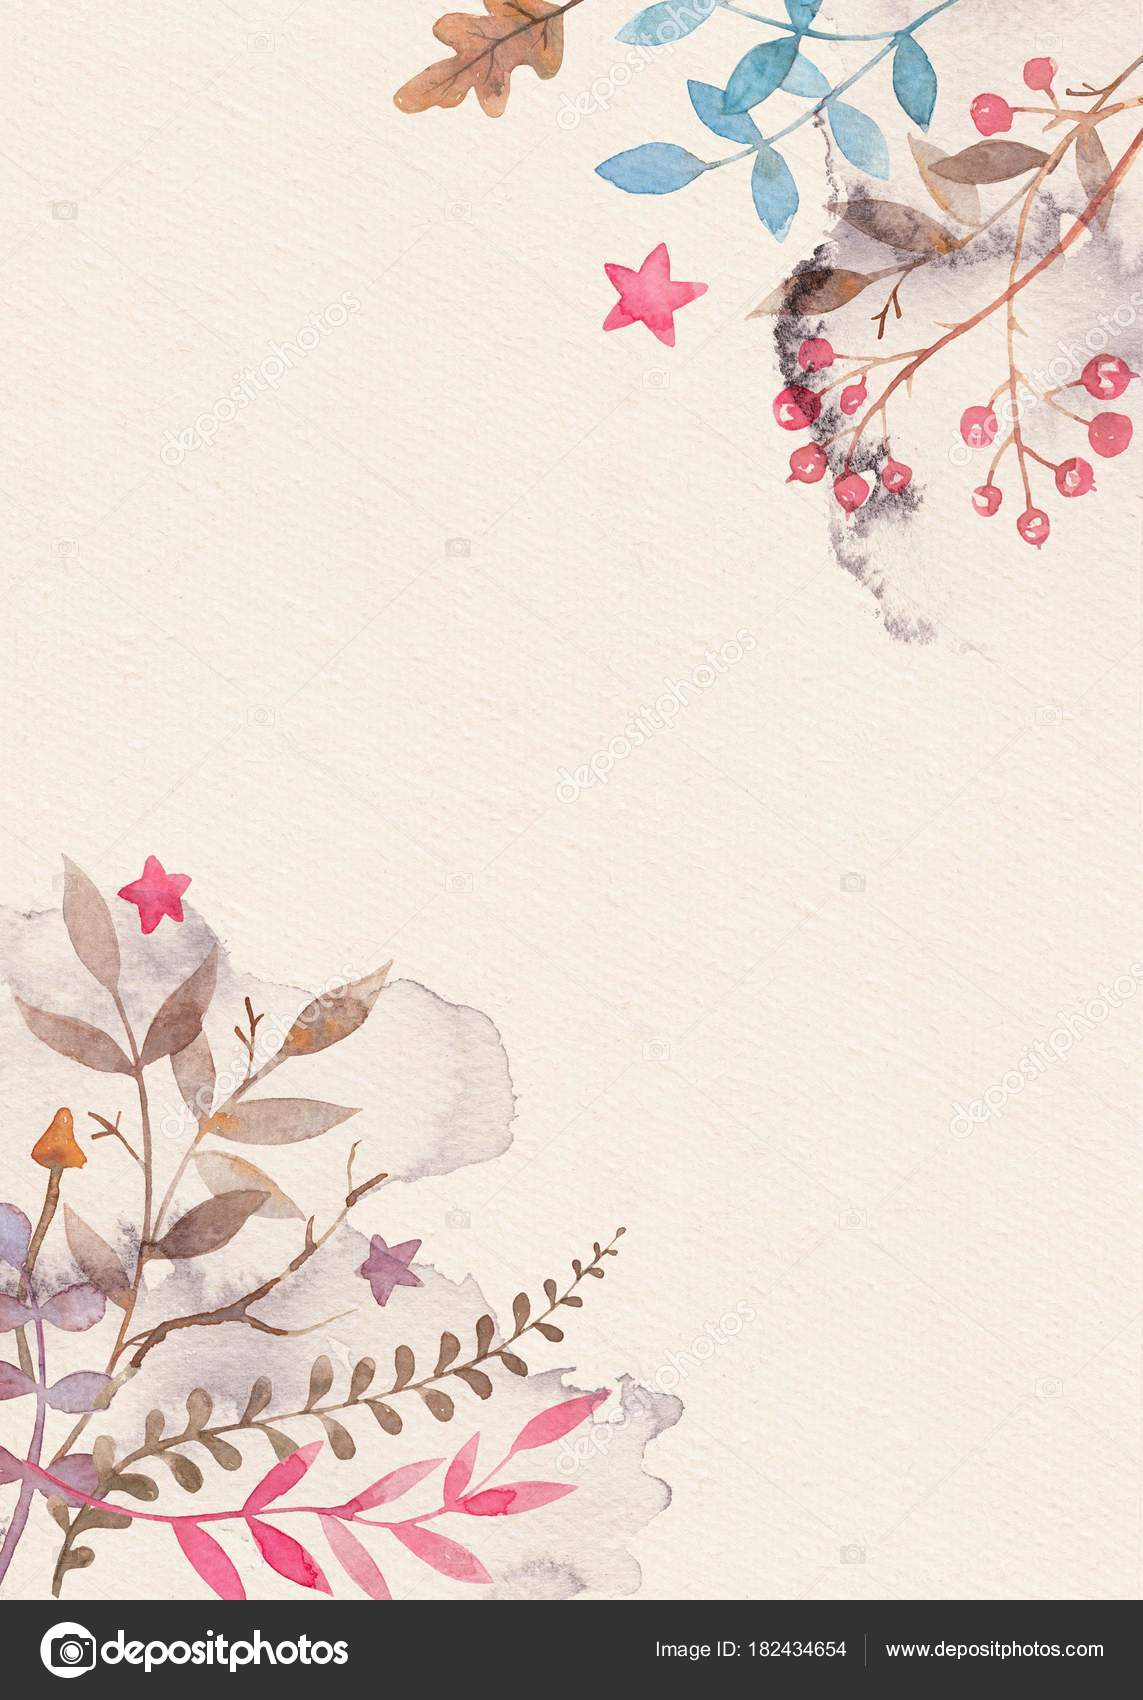 Hand Drawn Watercolor Greeting Card Template With Floral In Greeting Card Layout Templates